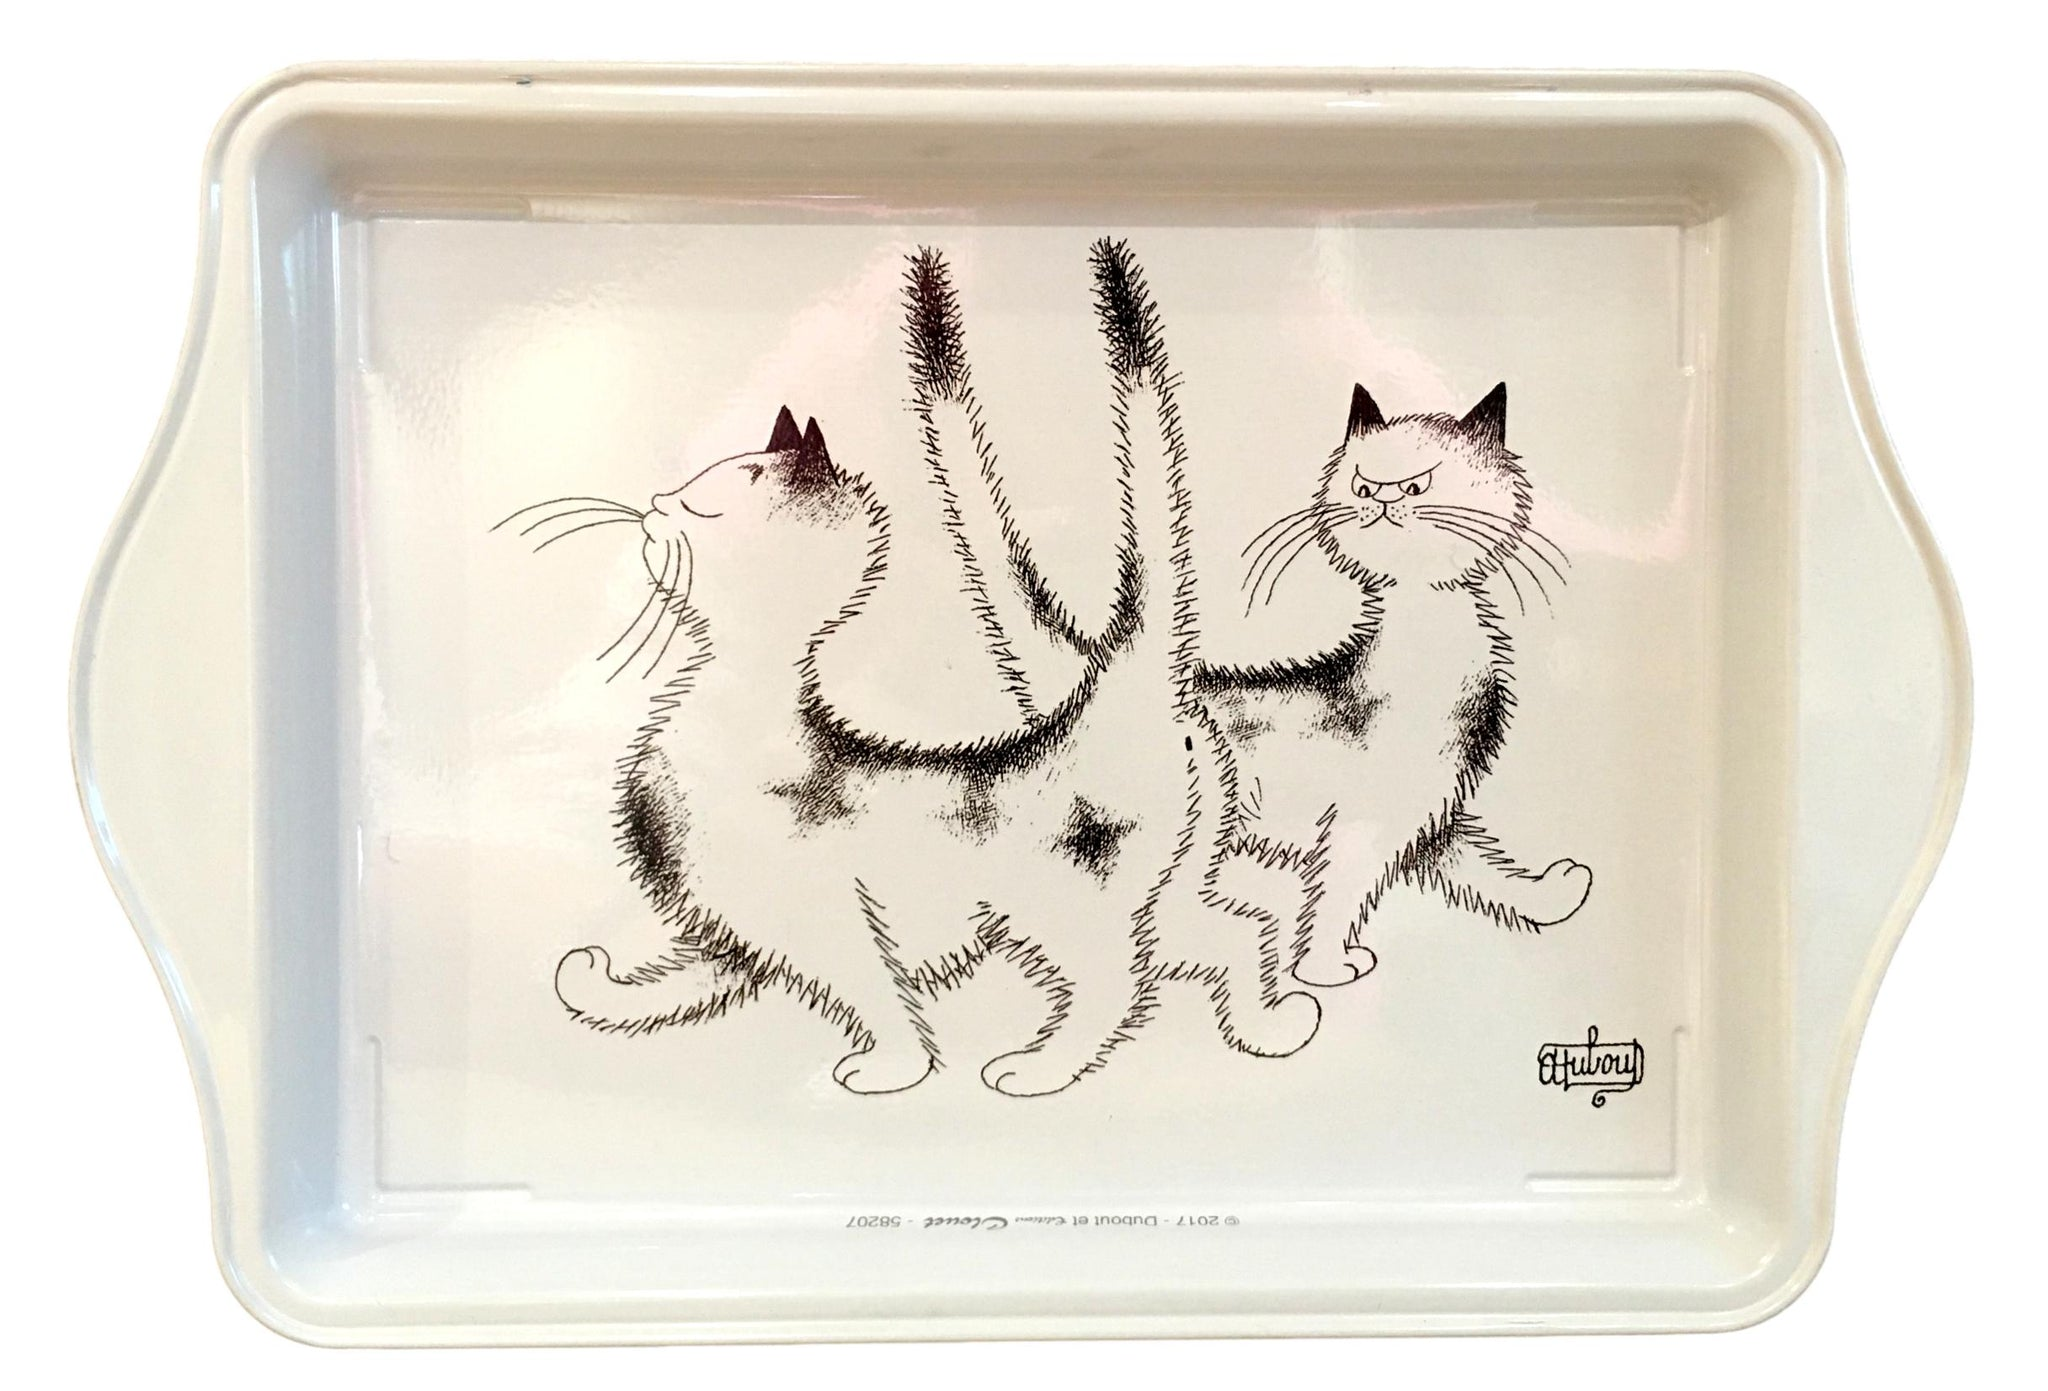 Dubout Cats - Heck, the Same Dress Metal Scatter Tray (Pimbeche)